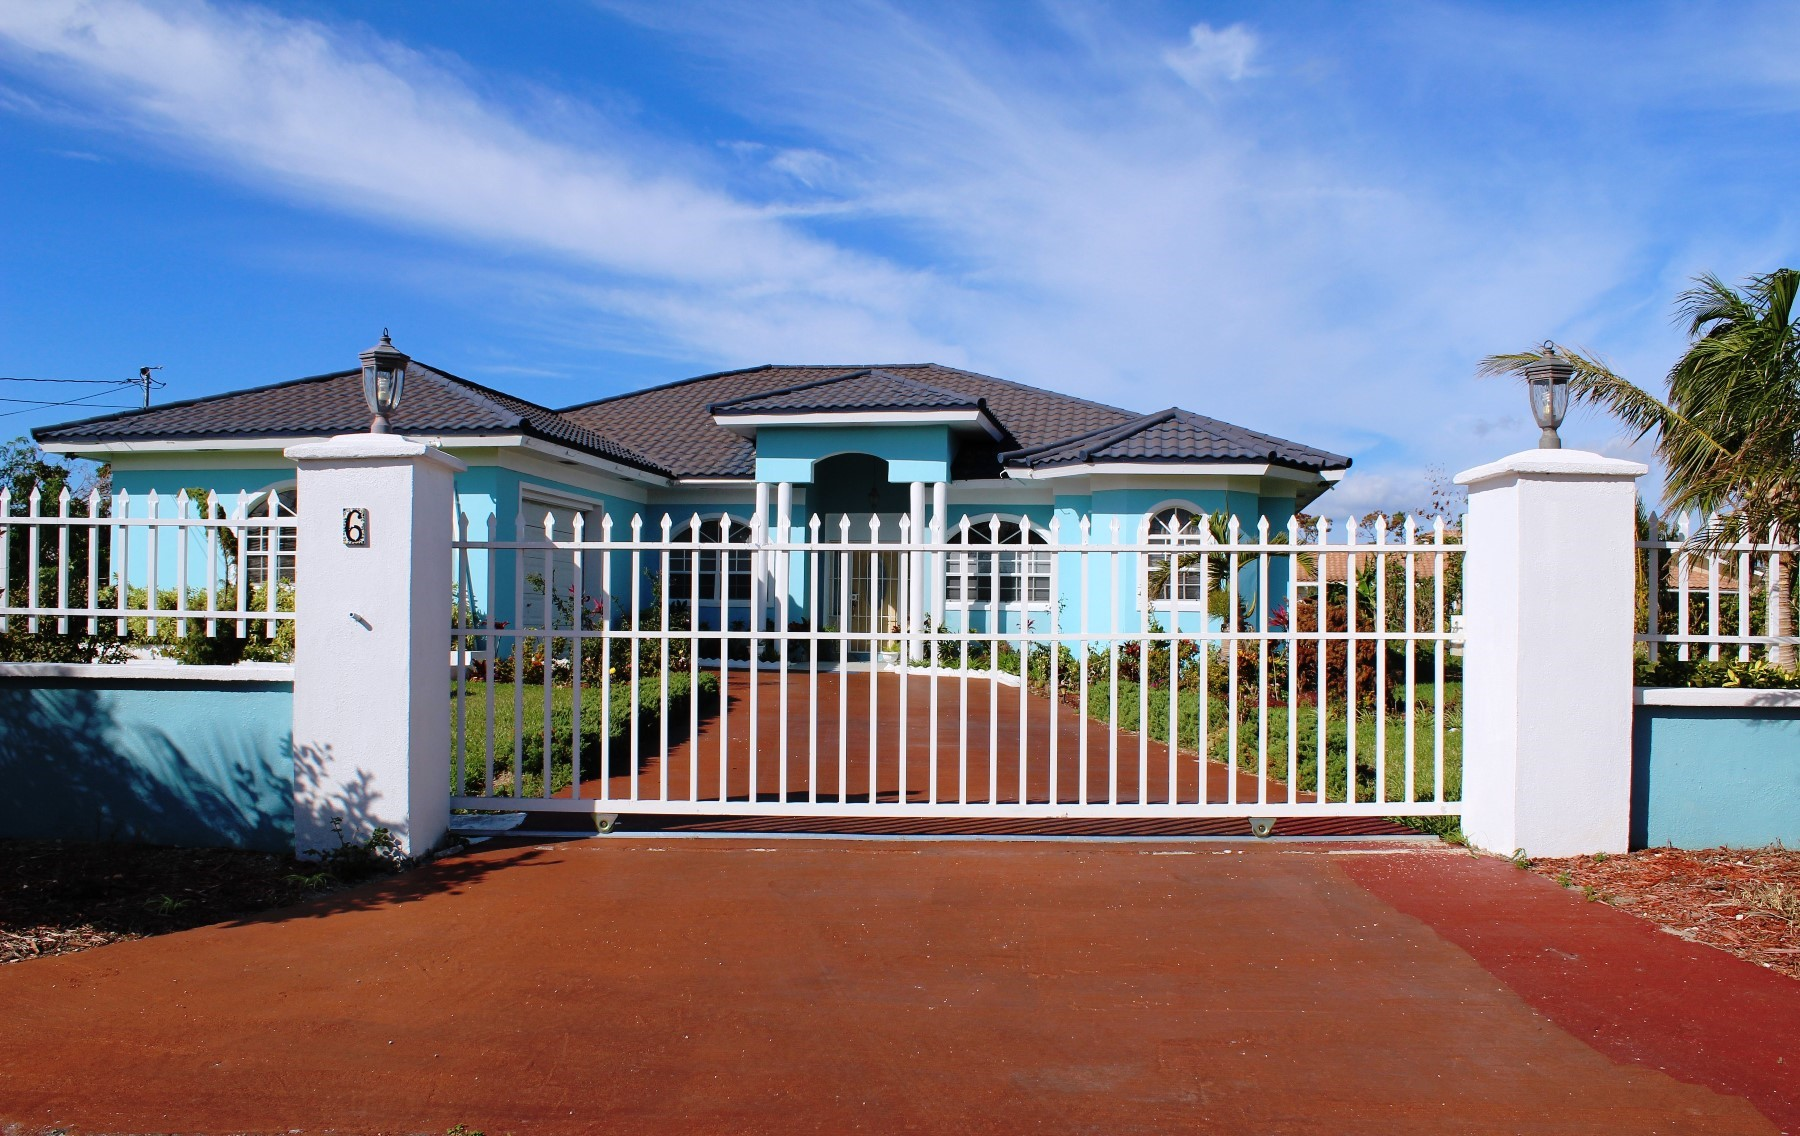 Single Family Home for Sale at Beautiful Bahamia Home - MLS 31560 Bahamia, Grand Bahama, Bahamas